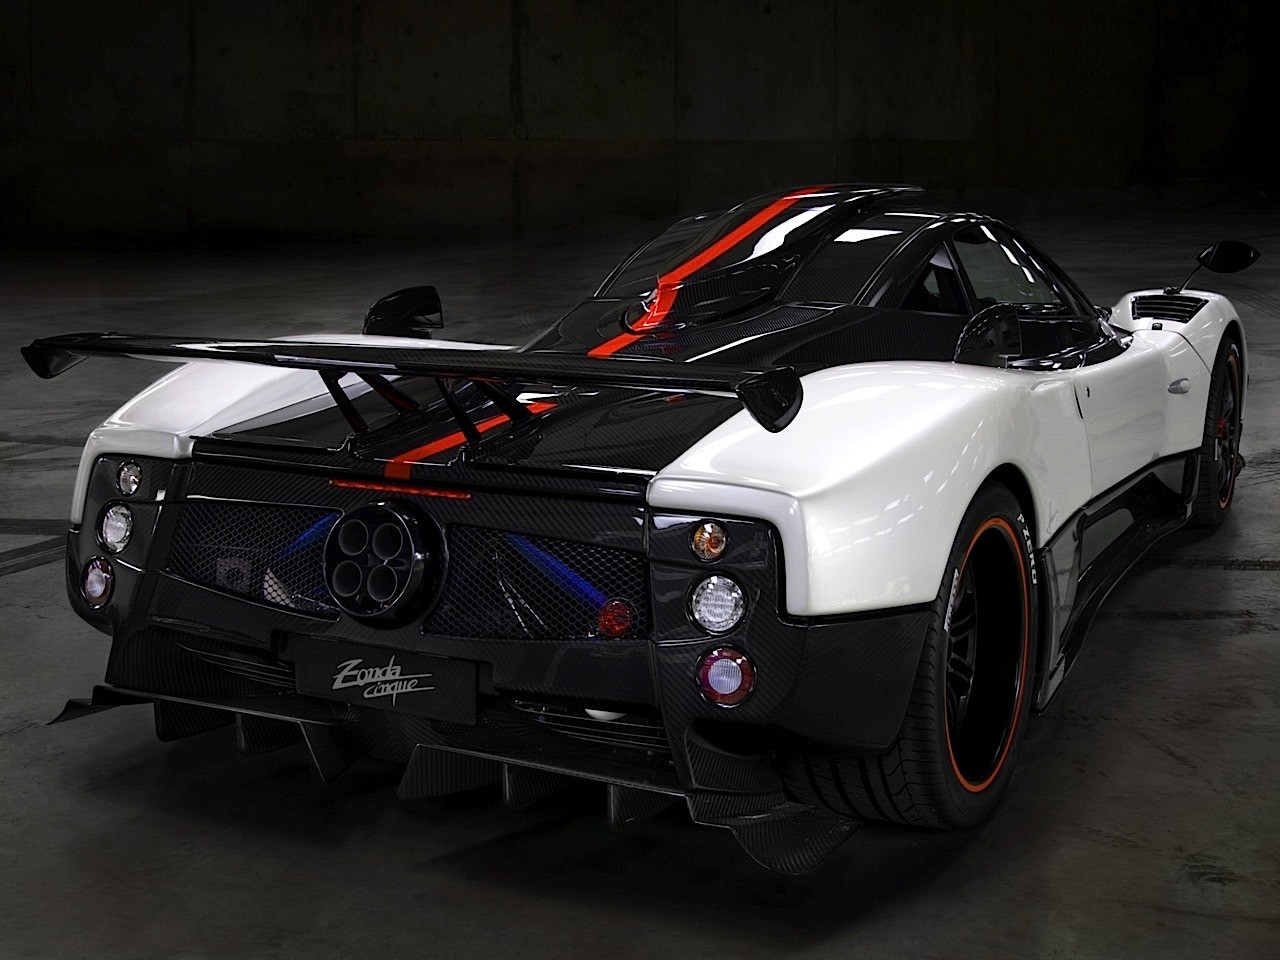 pagani zonda cinque specs photos 2008 2009. Black Bedroom Furniture Sets. Home Design Ideas